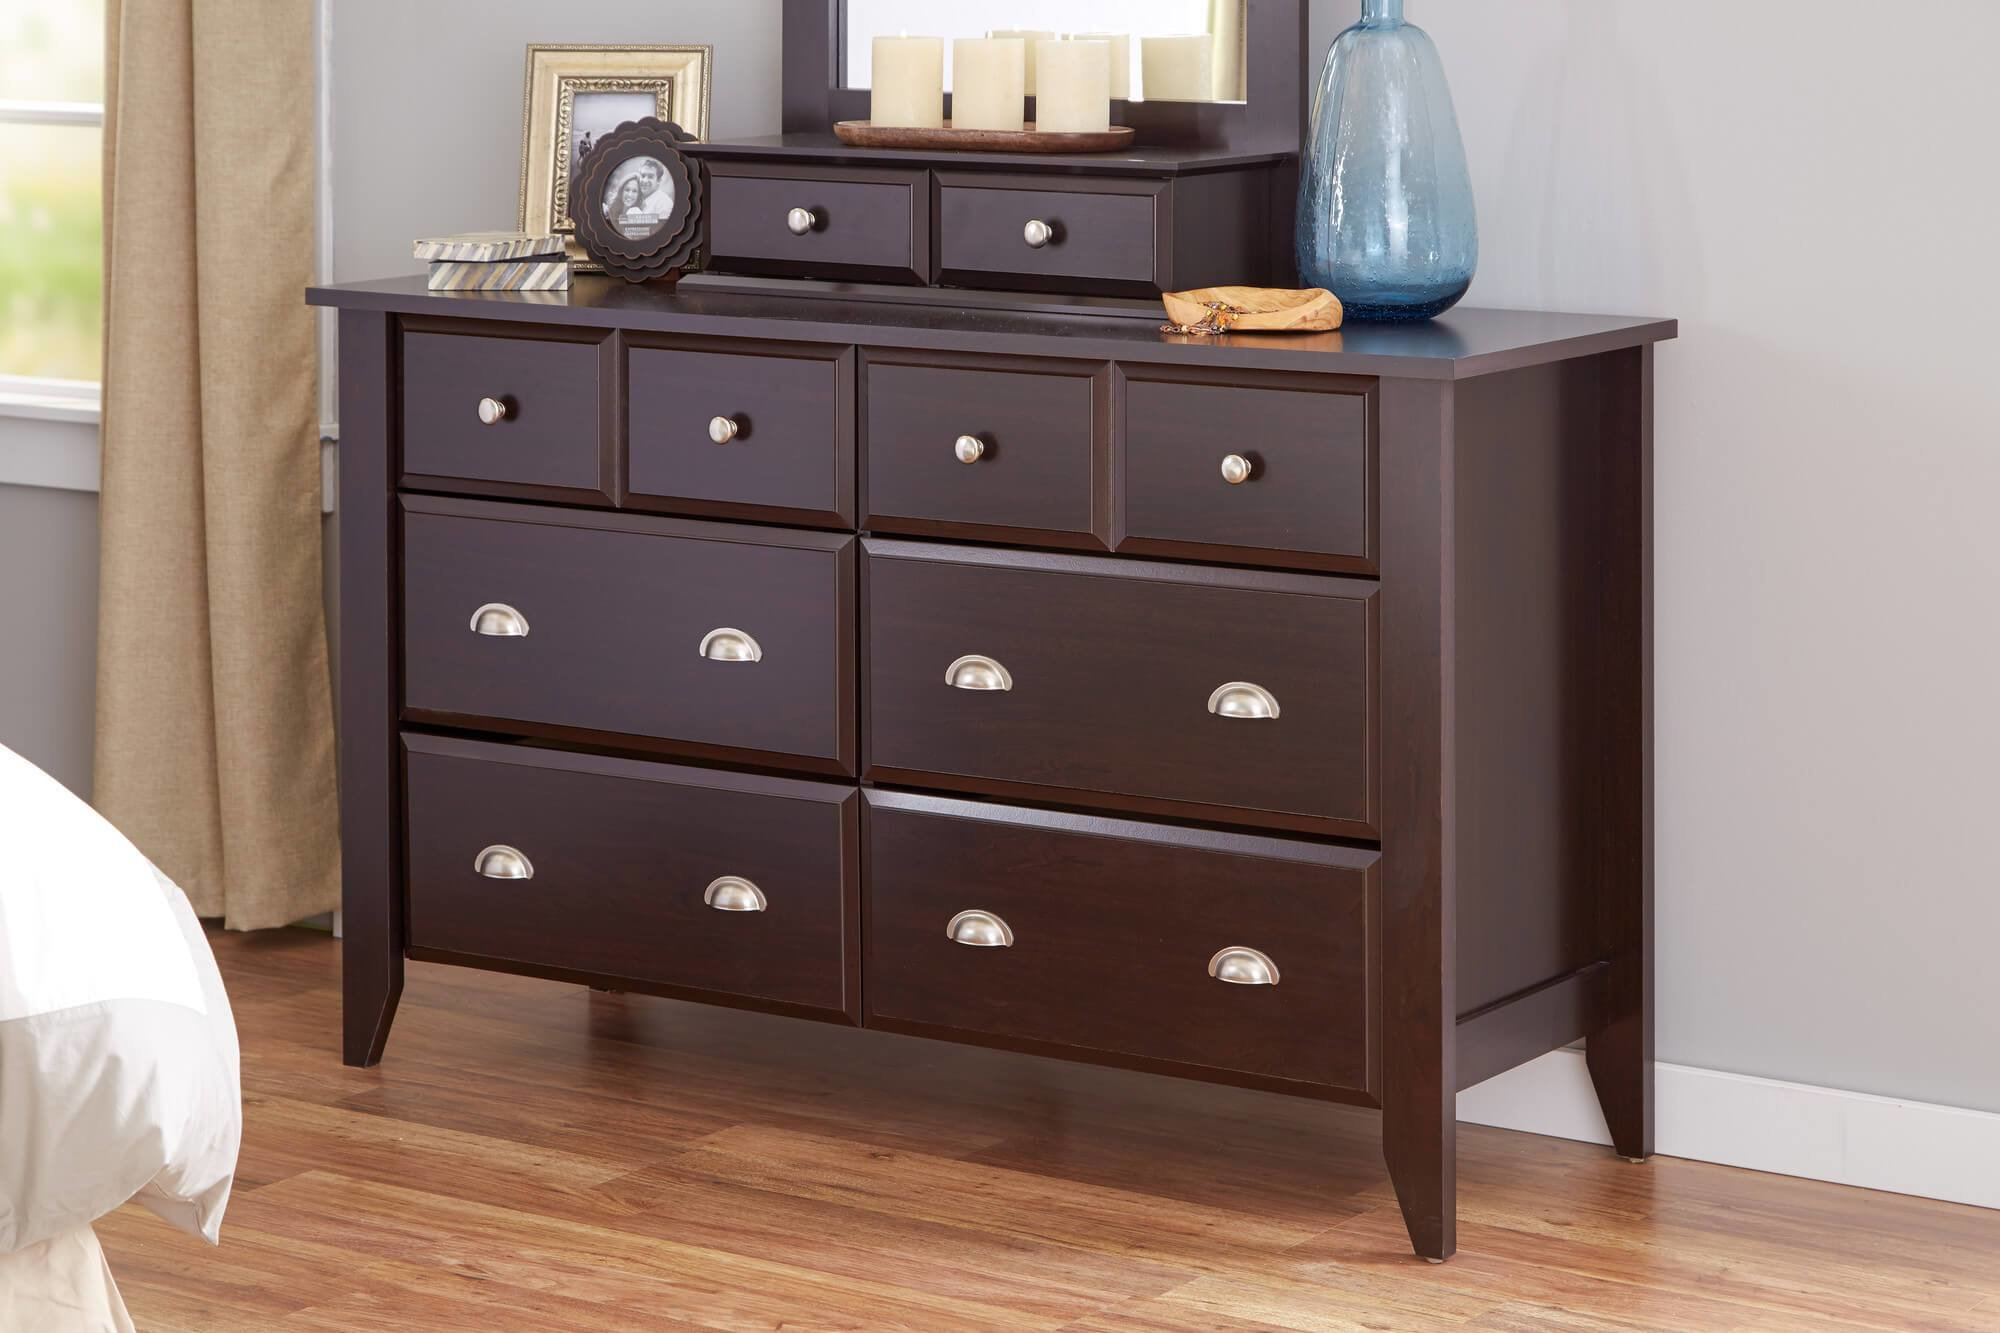 Best 21 Types Of Dressers Chest Of Drawers For Your Bedroom Great Ideas With Pictures